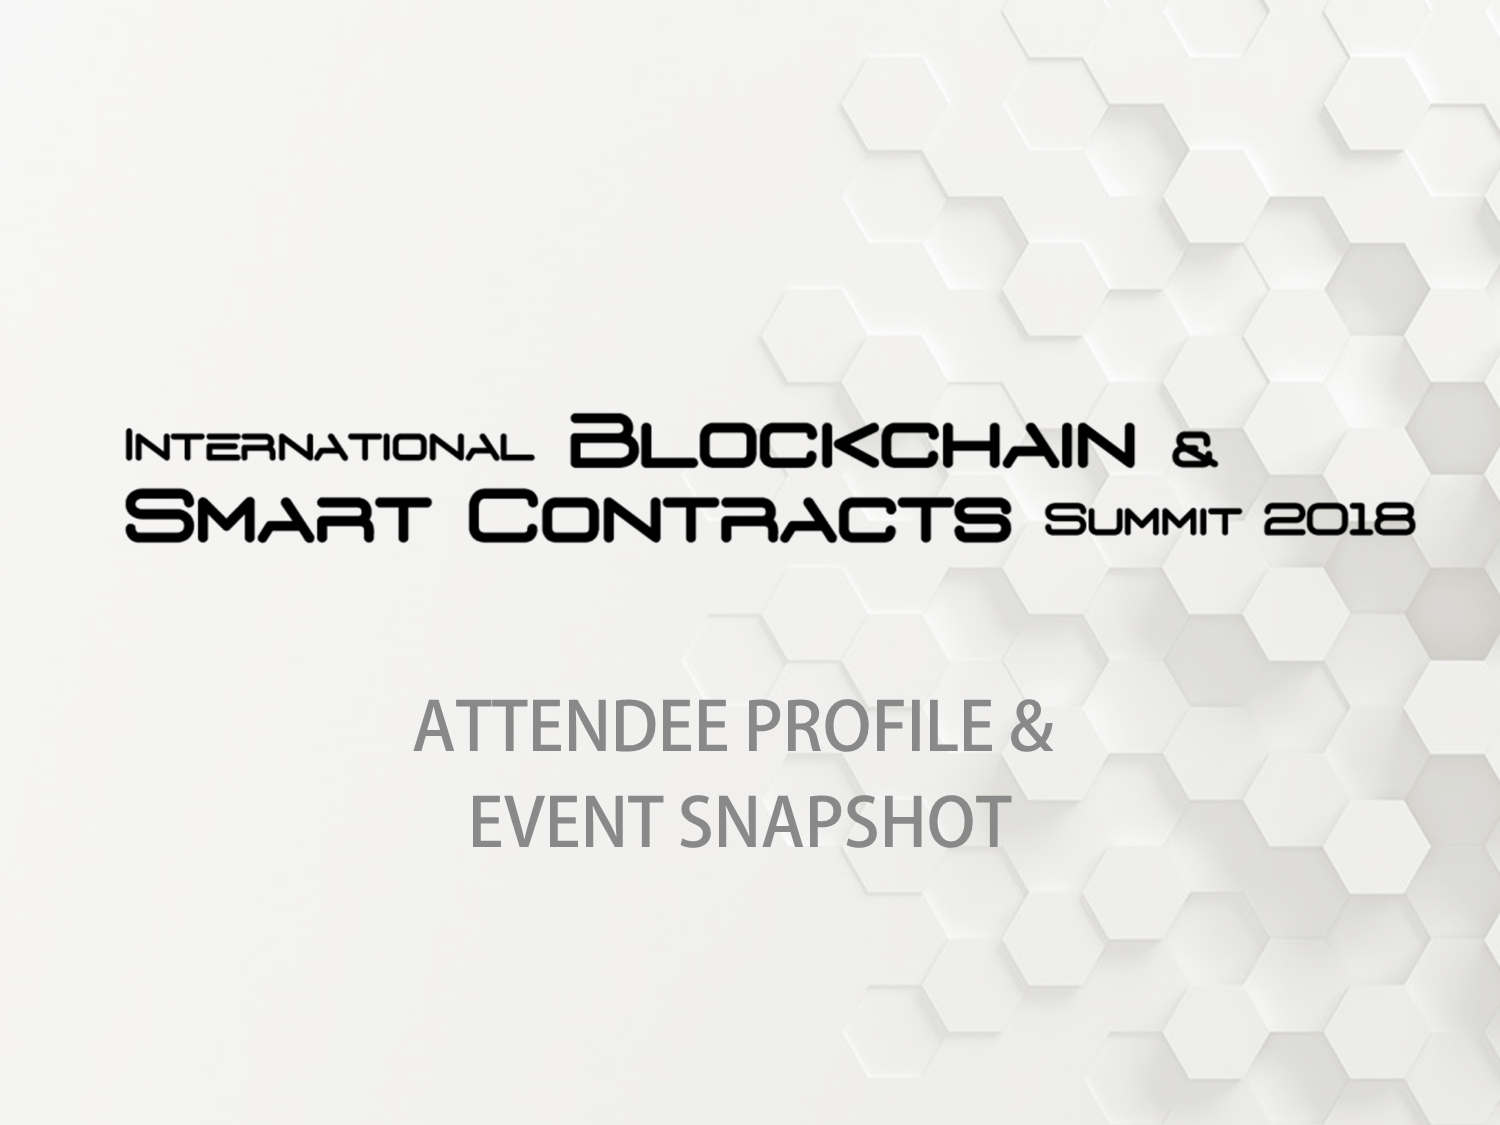 Attendee Profile & Event Snapshot